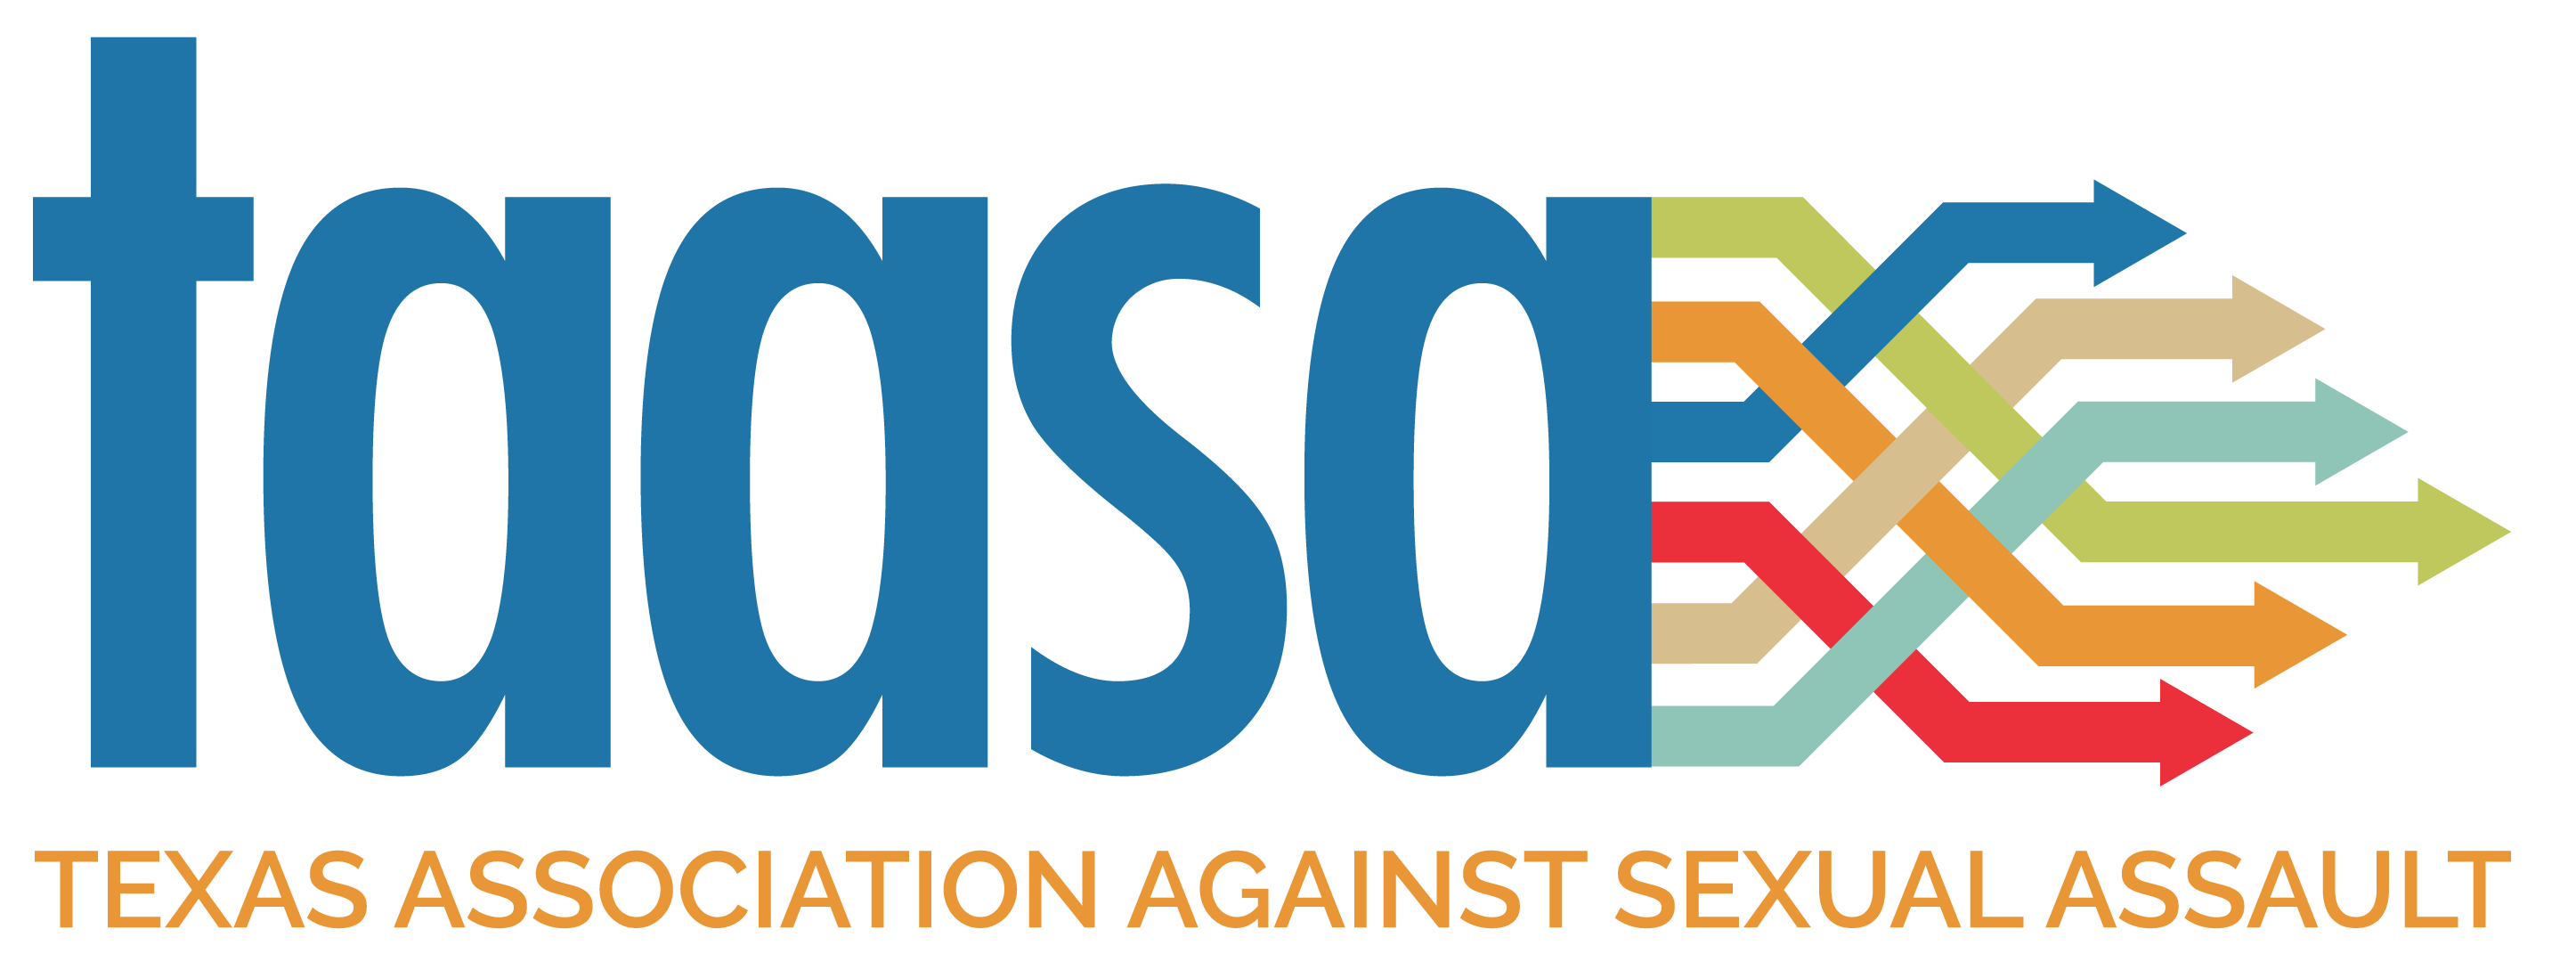 """blue text that spells out t, a, a, s, a with multiple arrows coming out of the 'a'. Below, in orange, it says """"Texas Association Against Sexual Assault"""""""